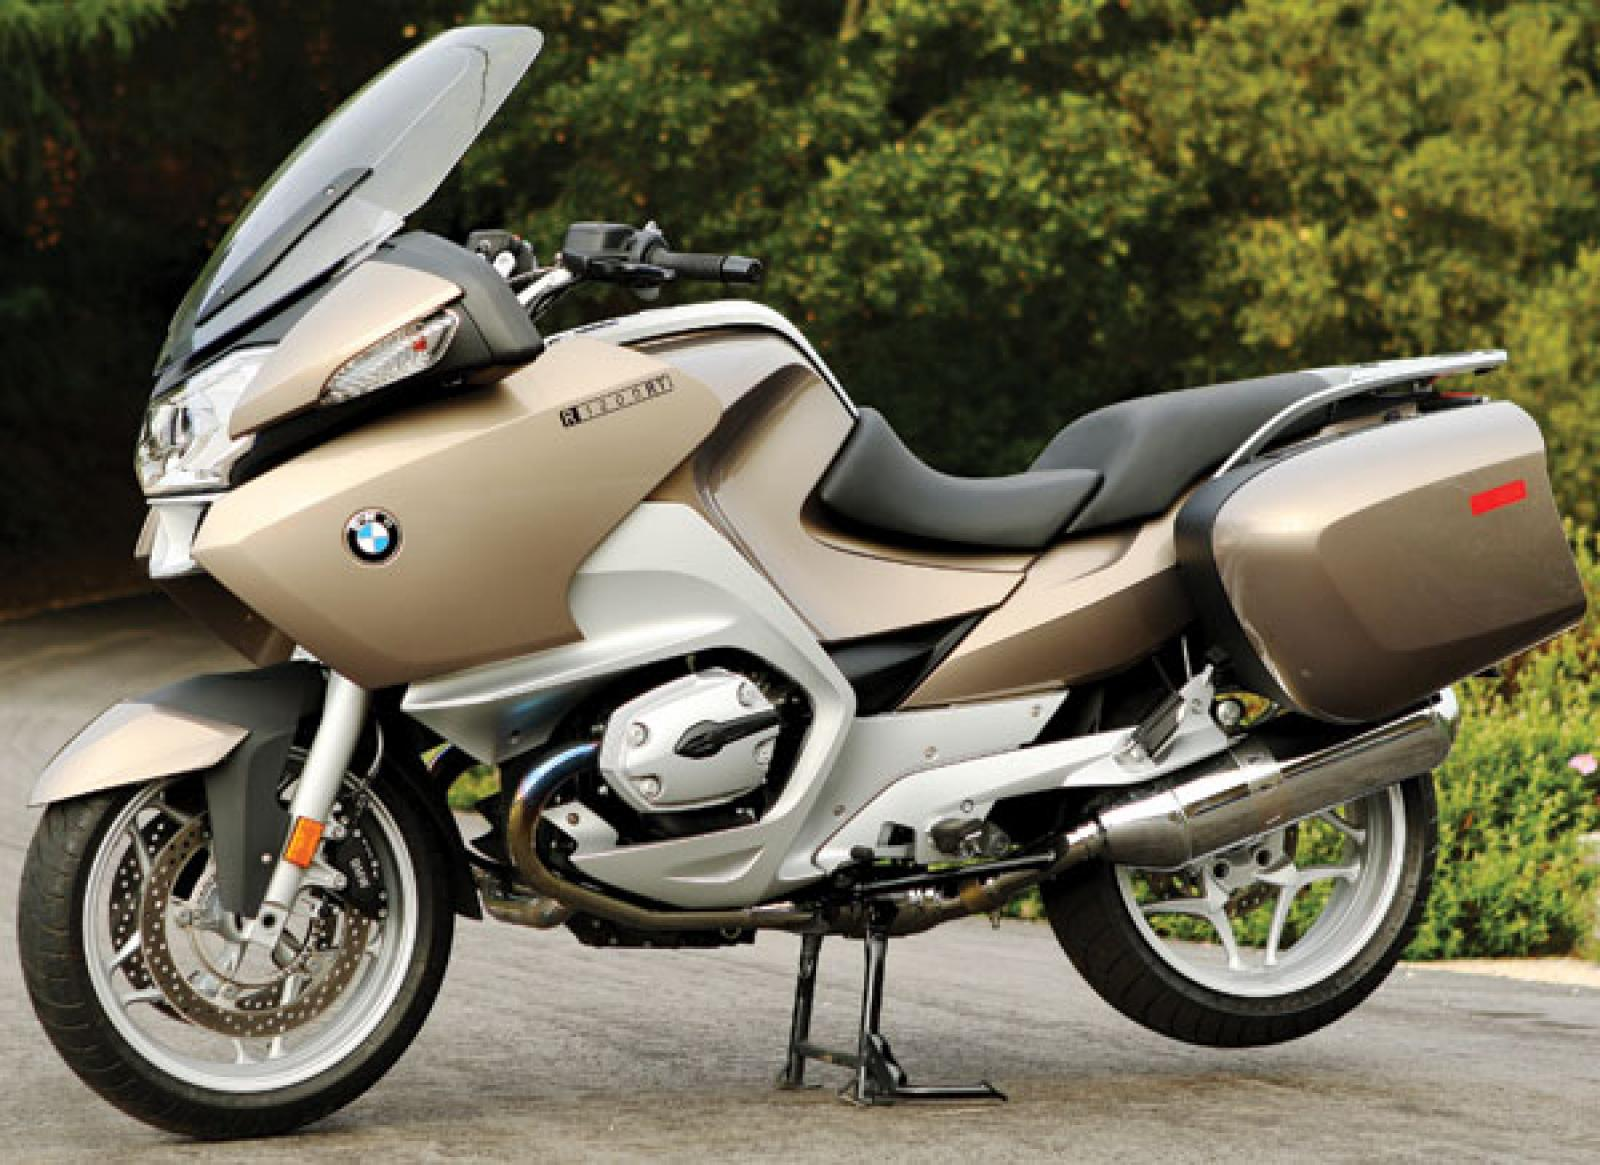 2008 bmw r1200rt moto zombdrive com. Black Bedroom Furniture Sets. Home Design Ideas